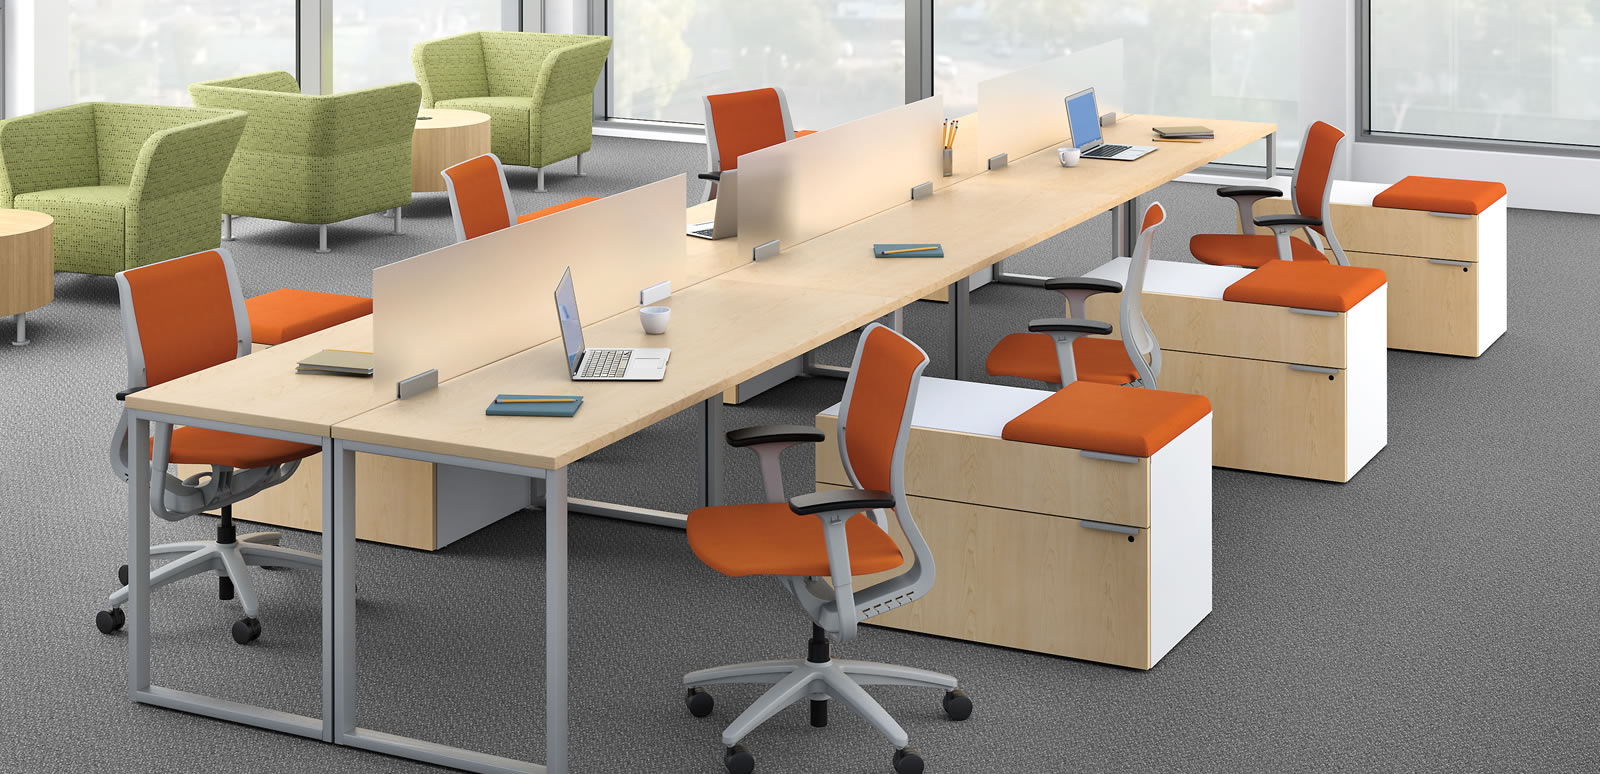 Sagar Corporation Is leading Supplier of all types of Office Furniture In Ahmedabad , Gujarat, India as per client's Requirement.  For More Details  Visit: sagarcorporation.nowfloats.com